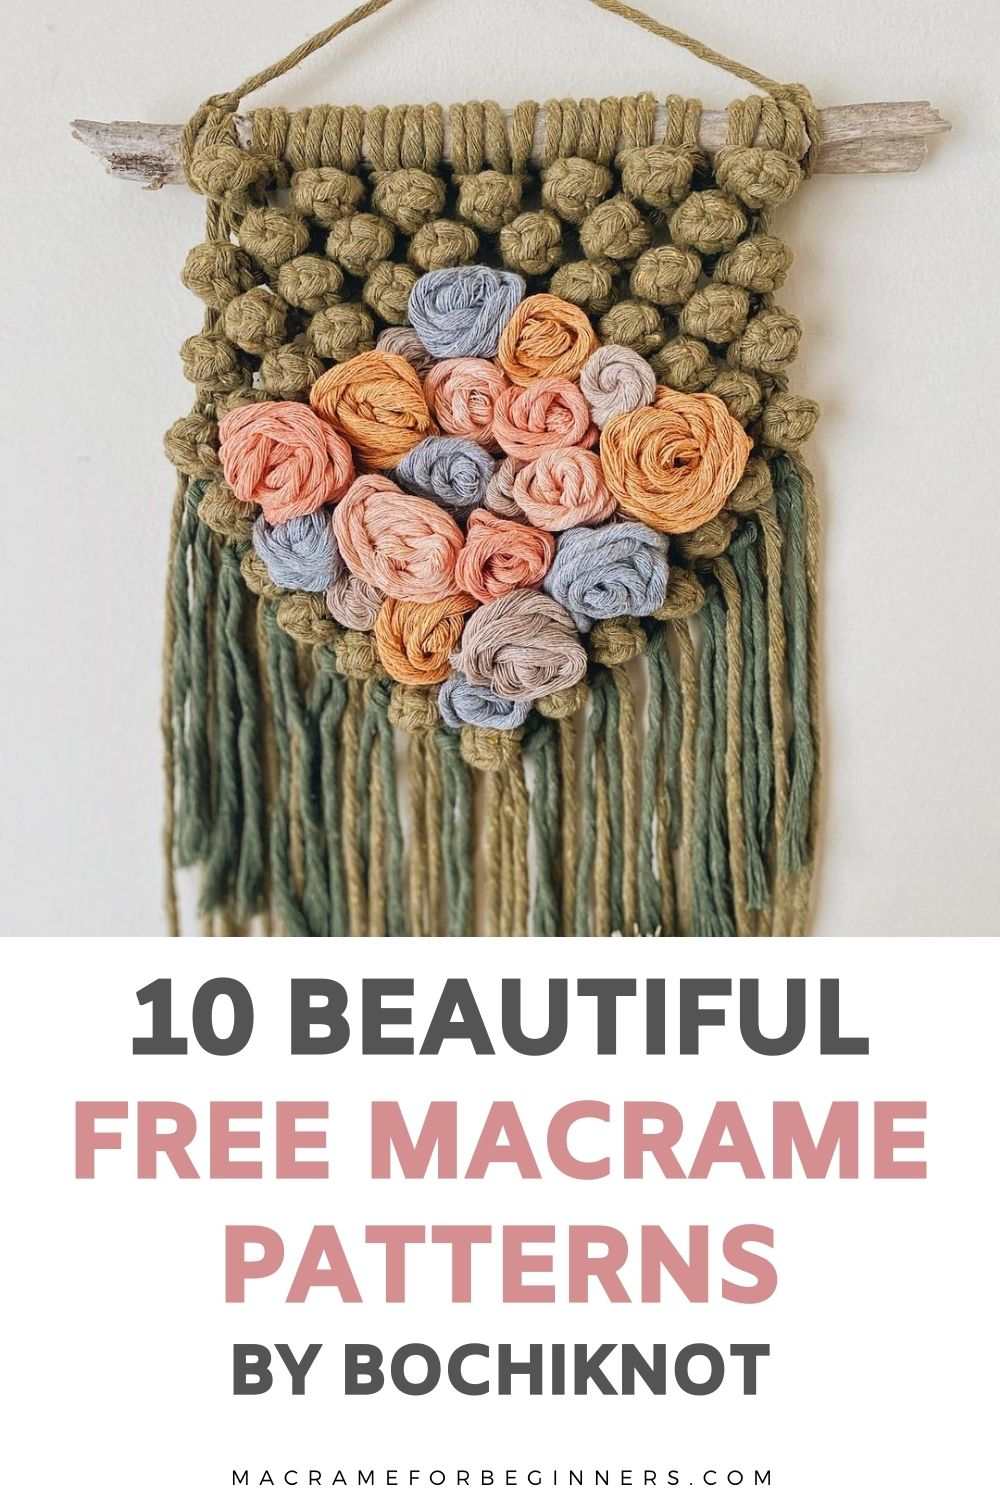 10 Gorgeous Free Macrame Patterns and Video Tutorials by Bochiknot + Interview - Macrame for Beginners